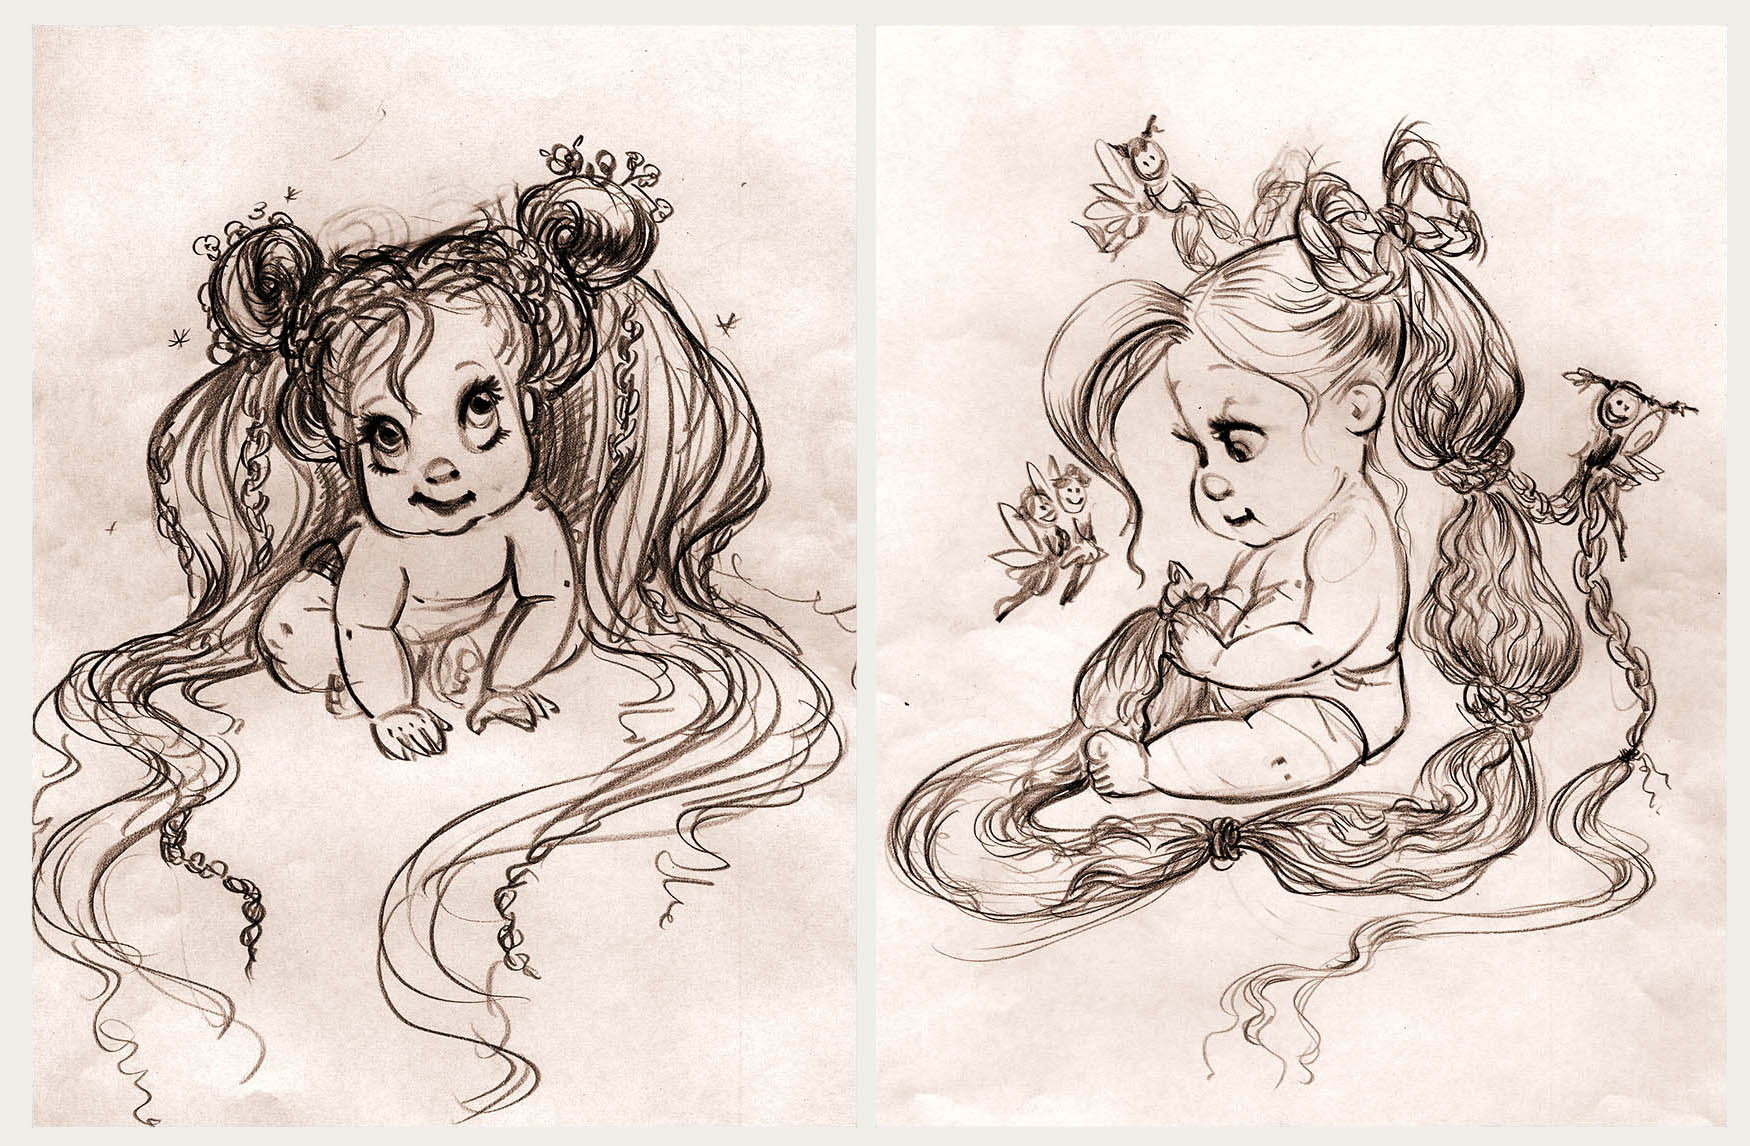 BABY RAPUNZEL HAIR DESIGNS // VISUAL DEVELOPMENT FOR TANGLED